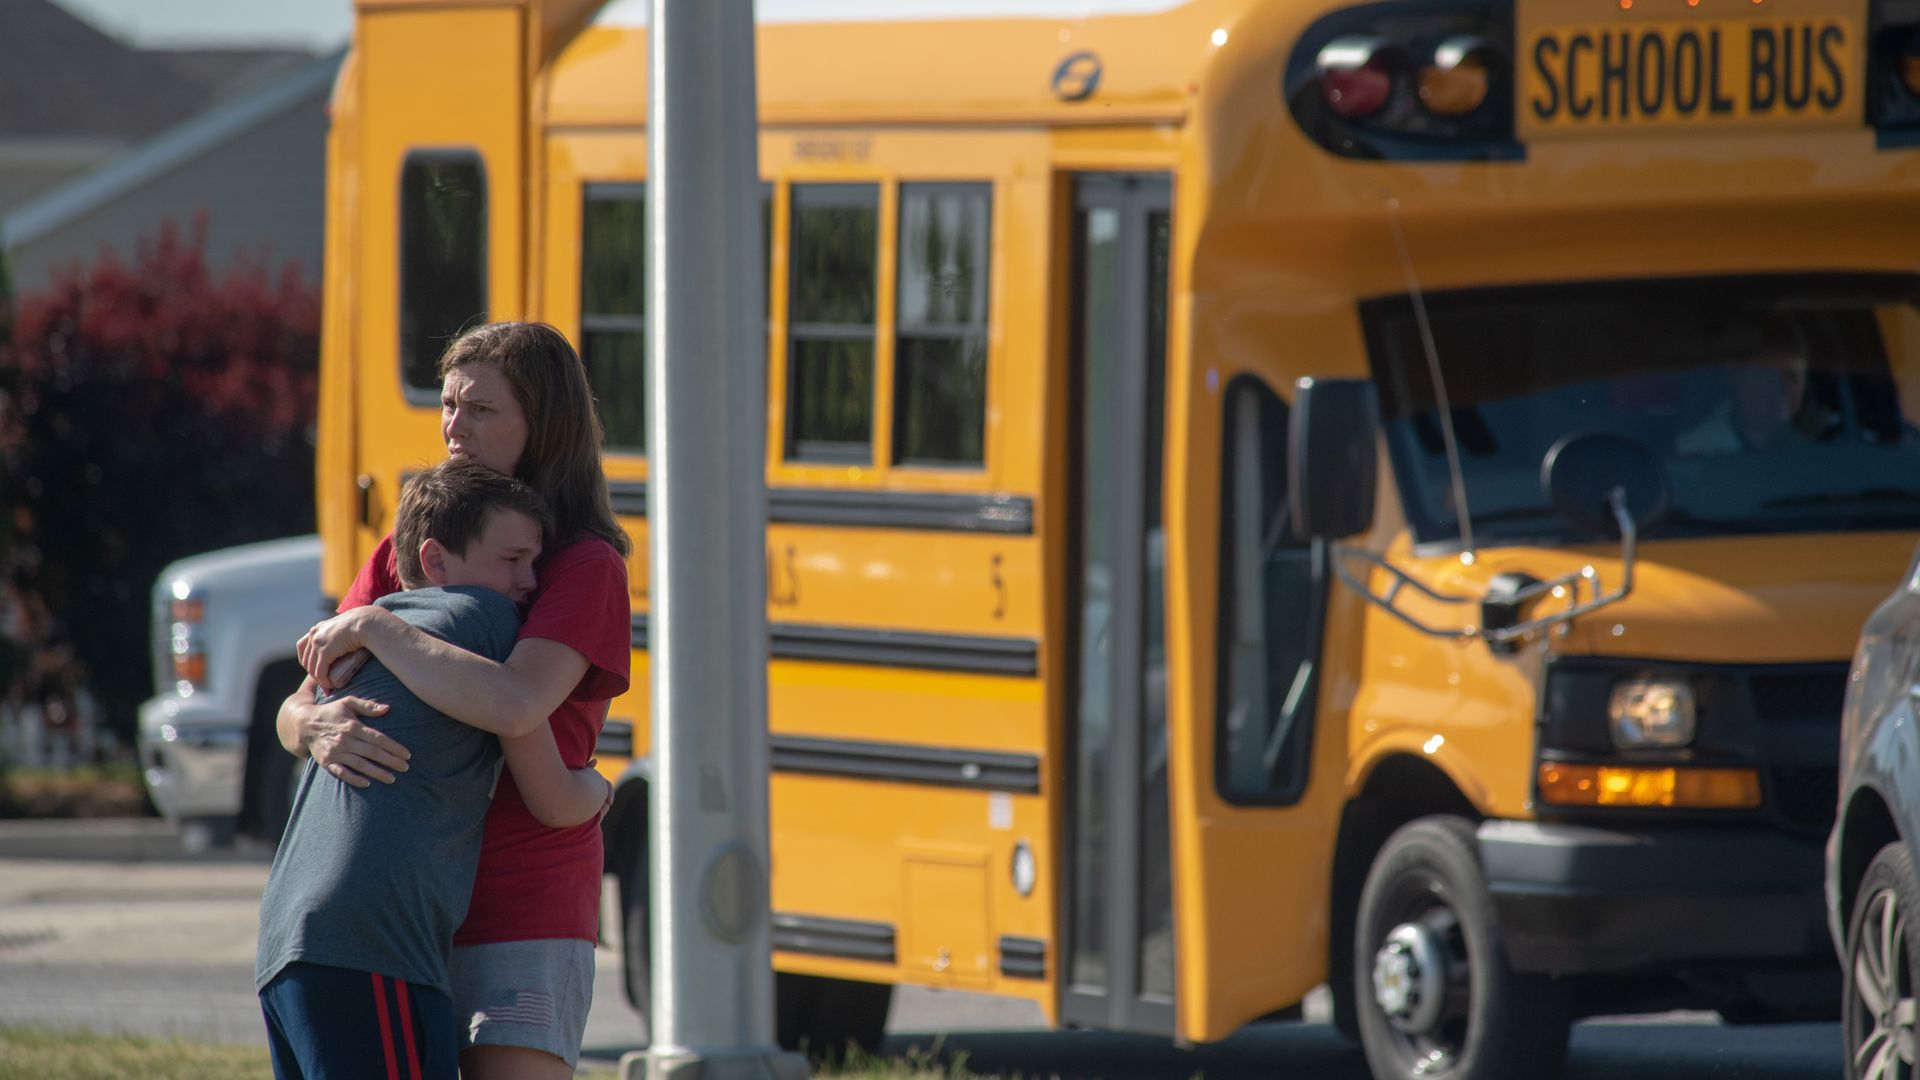 A woman and young boy hug near a school bus.